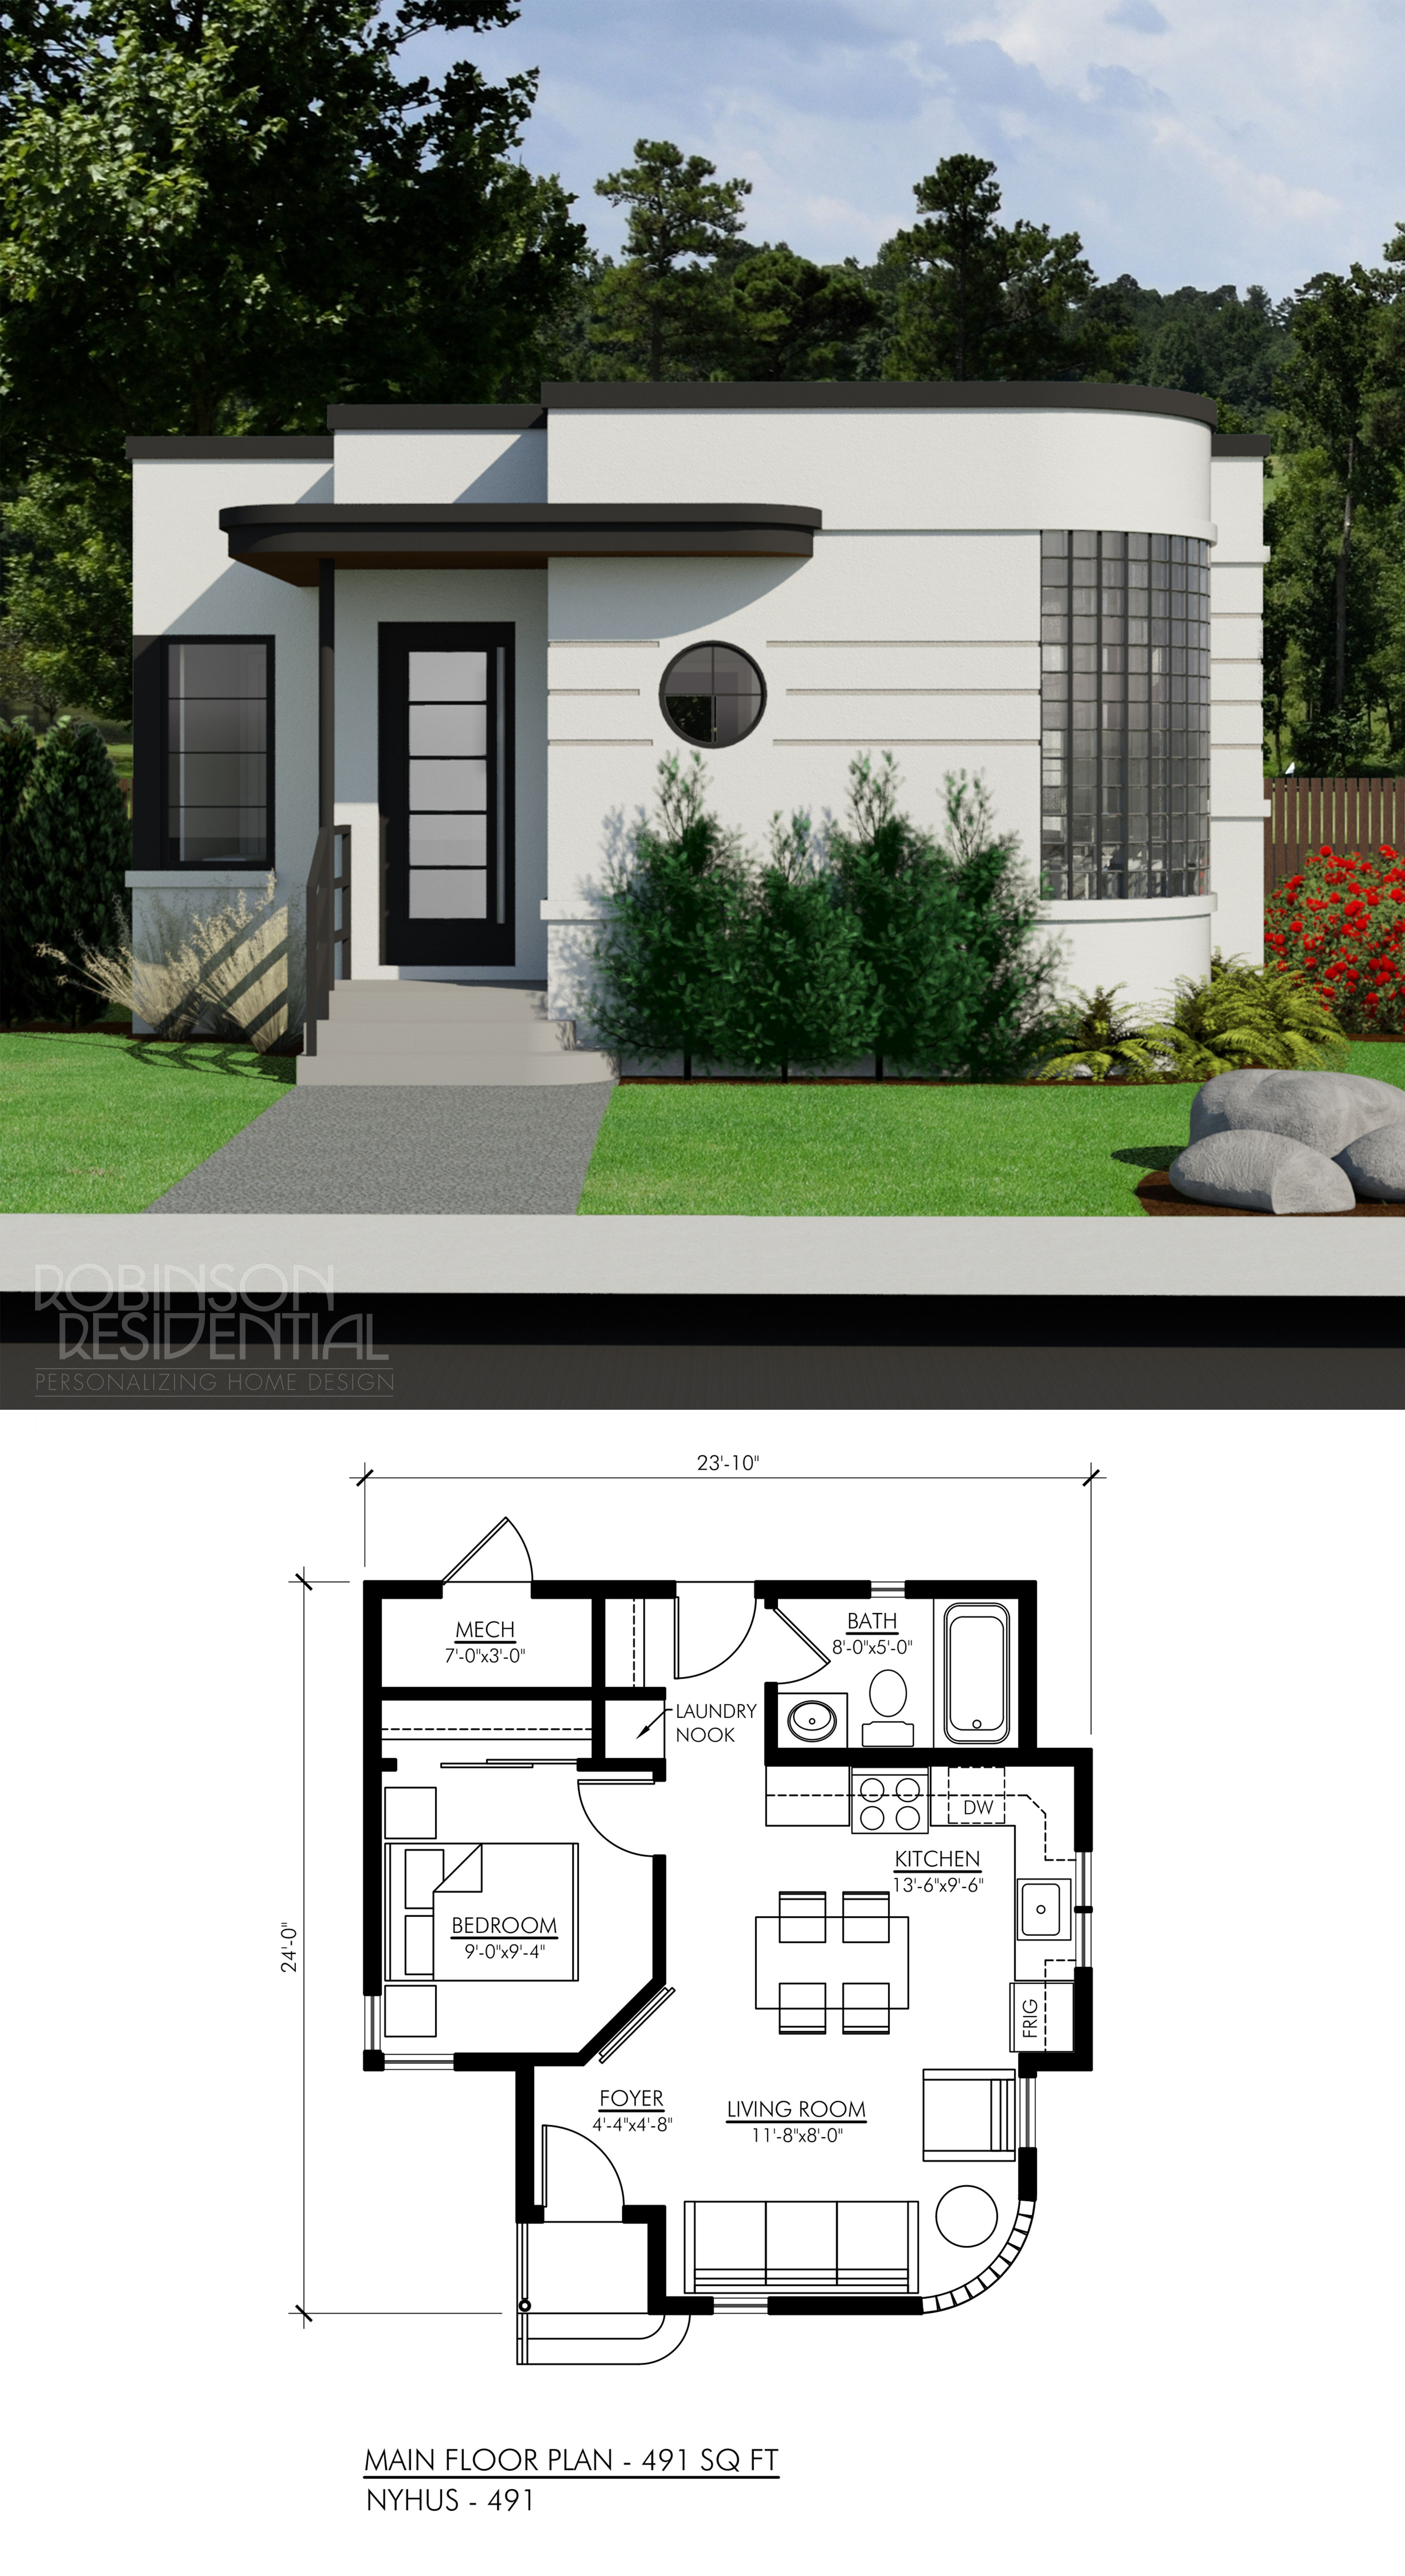 Contemporary Nyhus 491 Robinson Plans House Plans House Exterior House Layouts